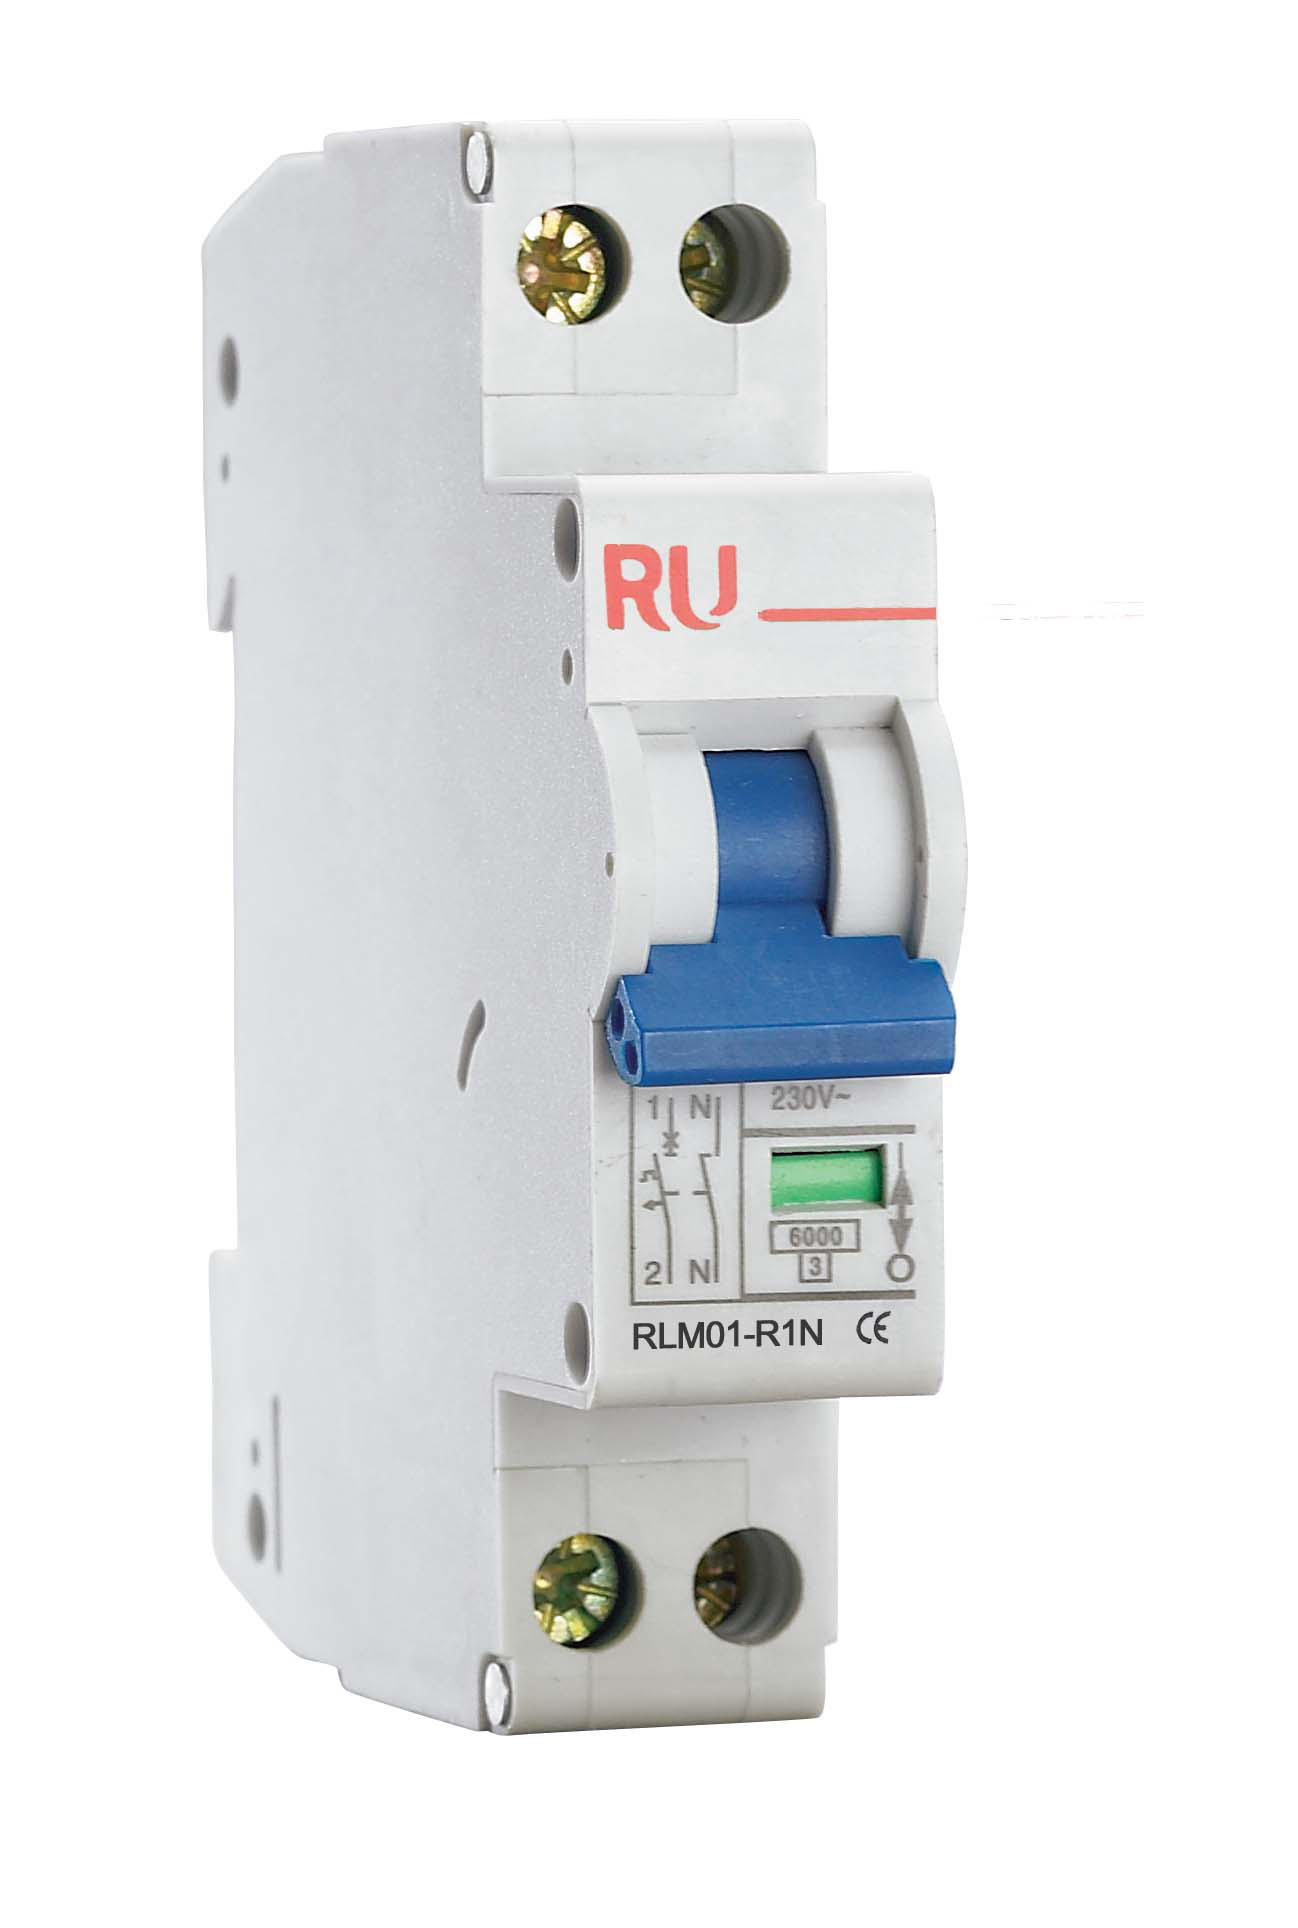 hight resolution of this is an mcb minature circuit breaker which is an automatic protection device in the fusebox that switches off a circuit if they detect a fault